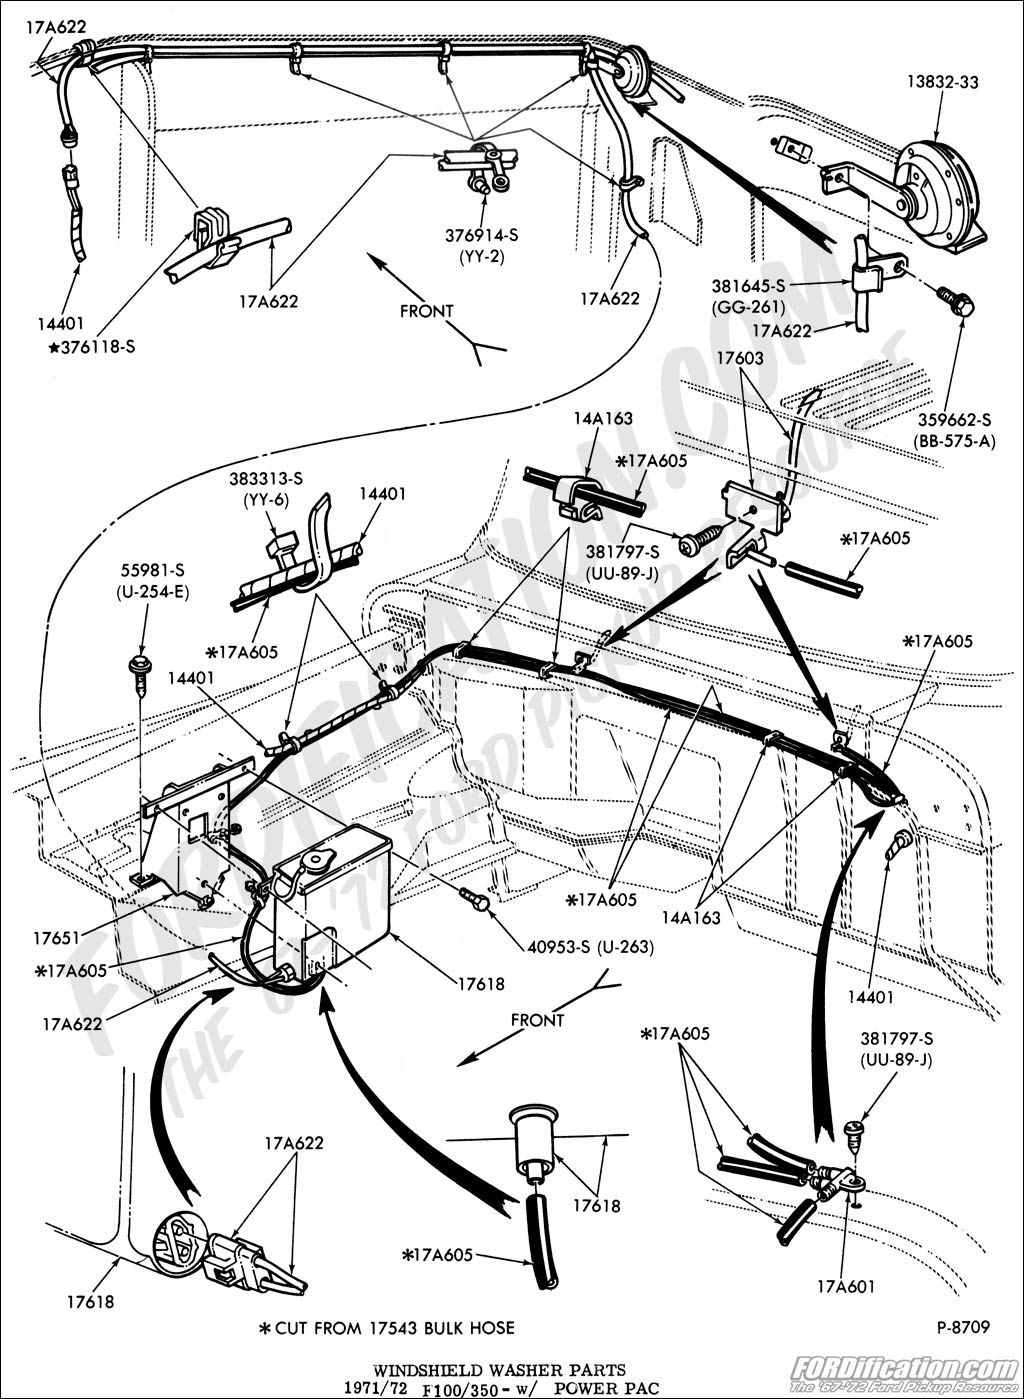 Wiring: 1994 ford explorer wiper motor wiring diagram